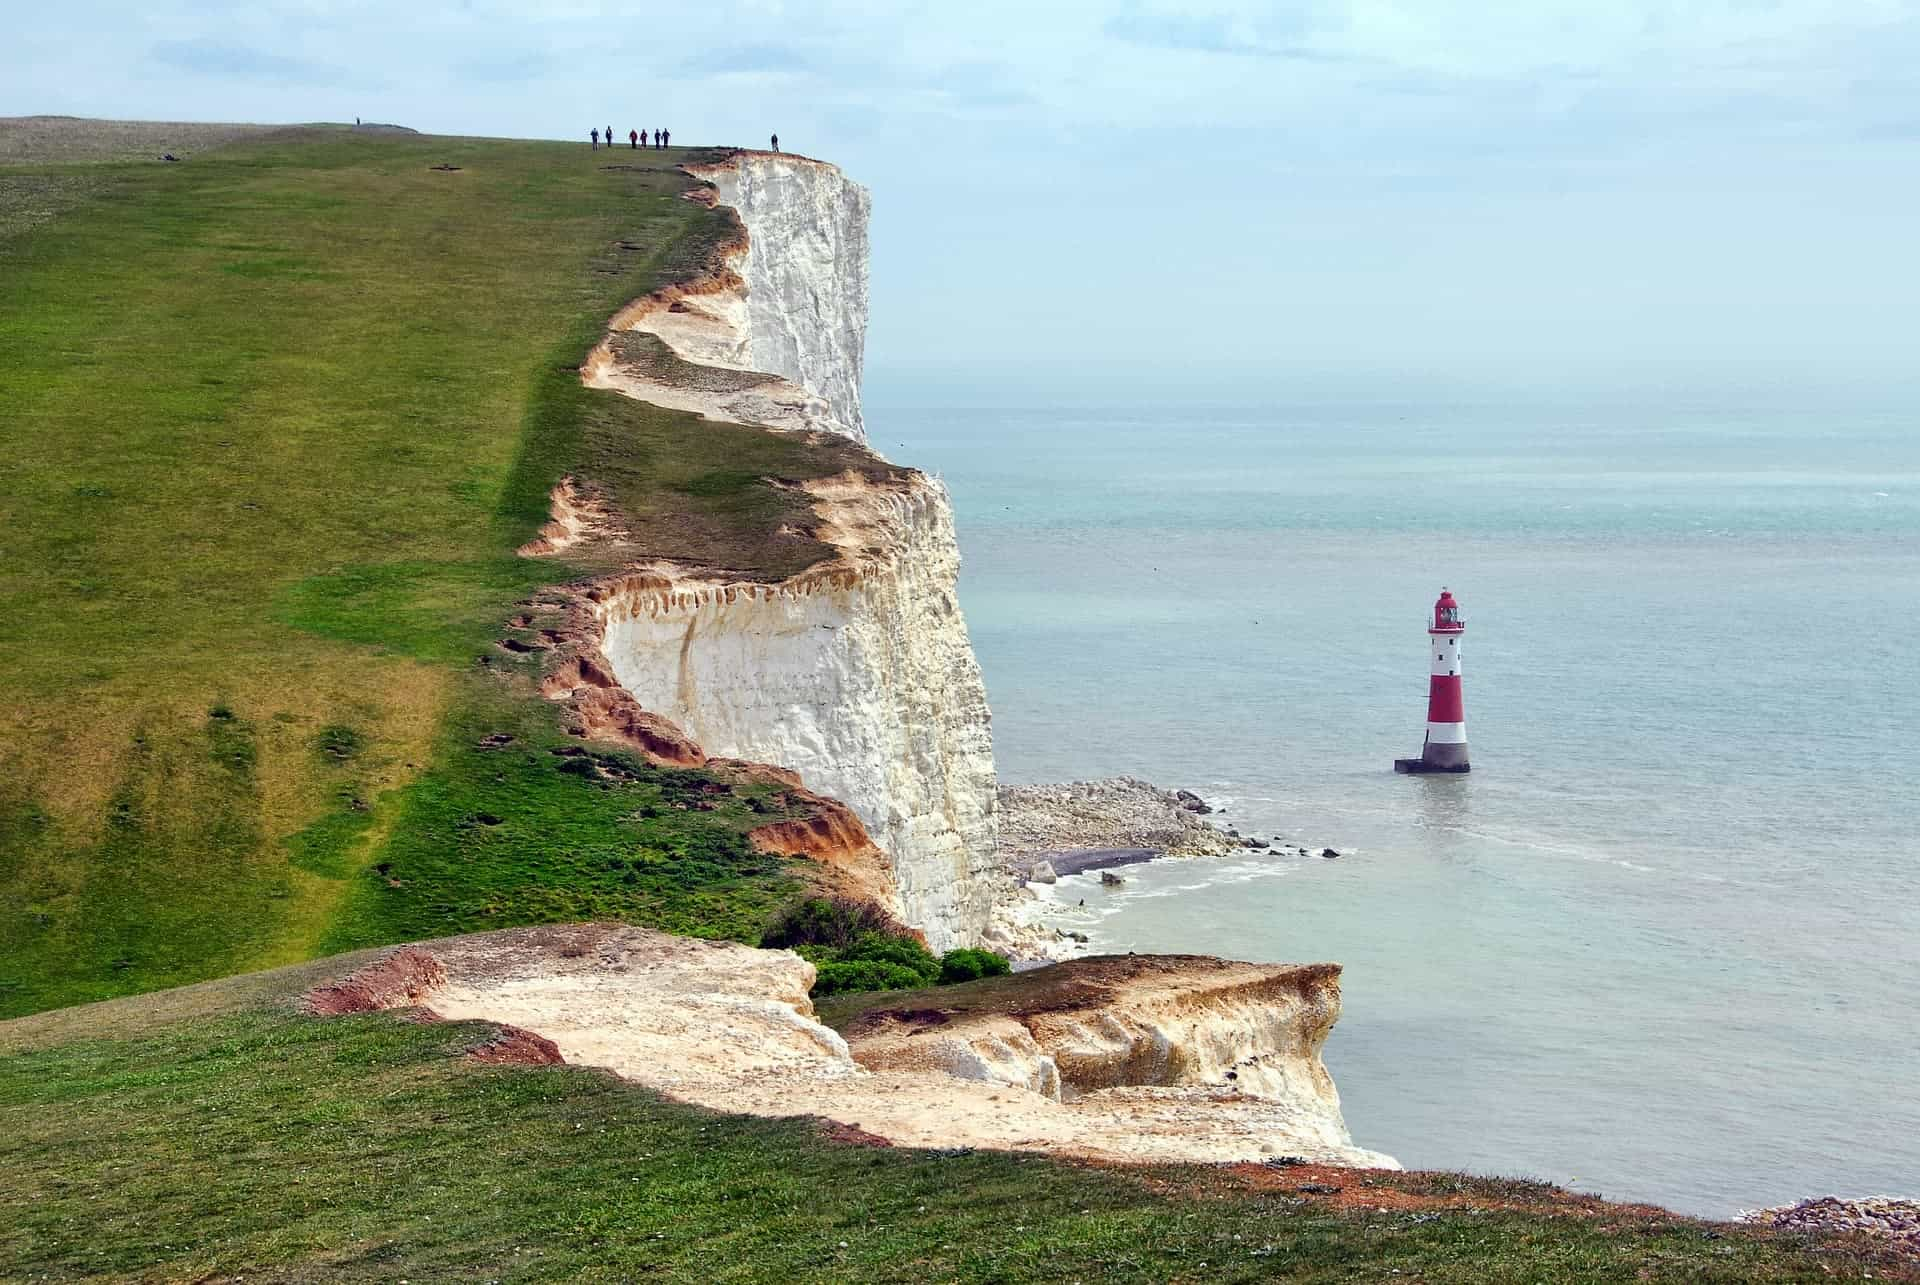 Beachy Head is a chalk headland in East Sussex